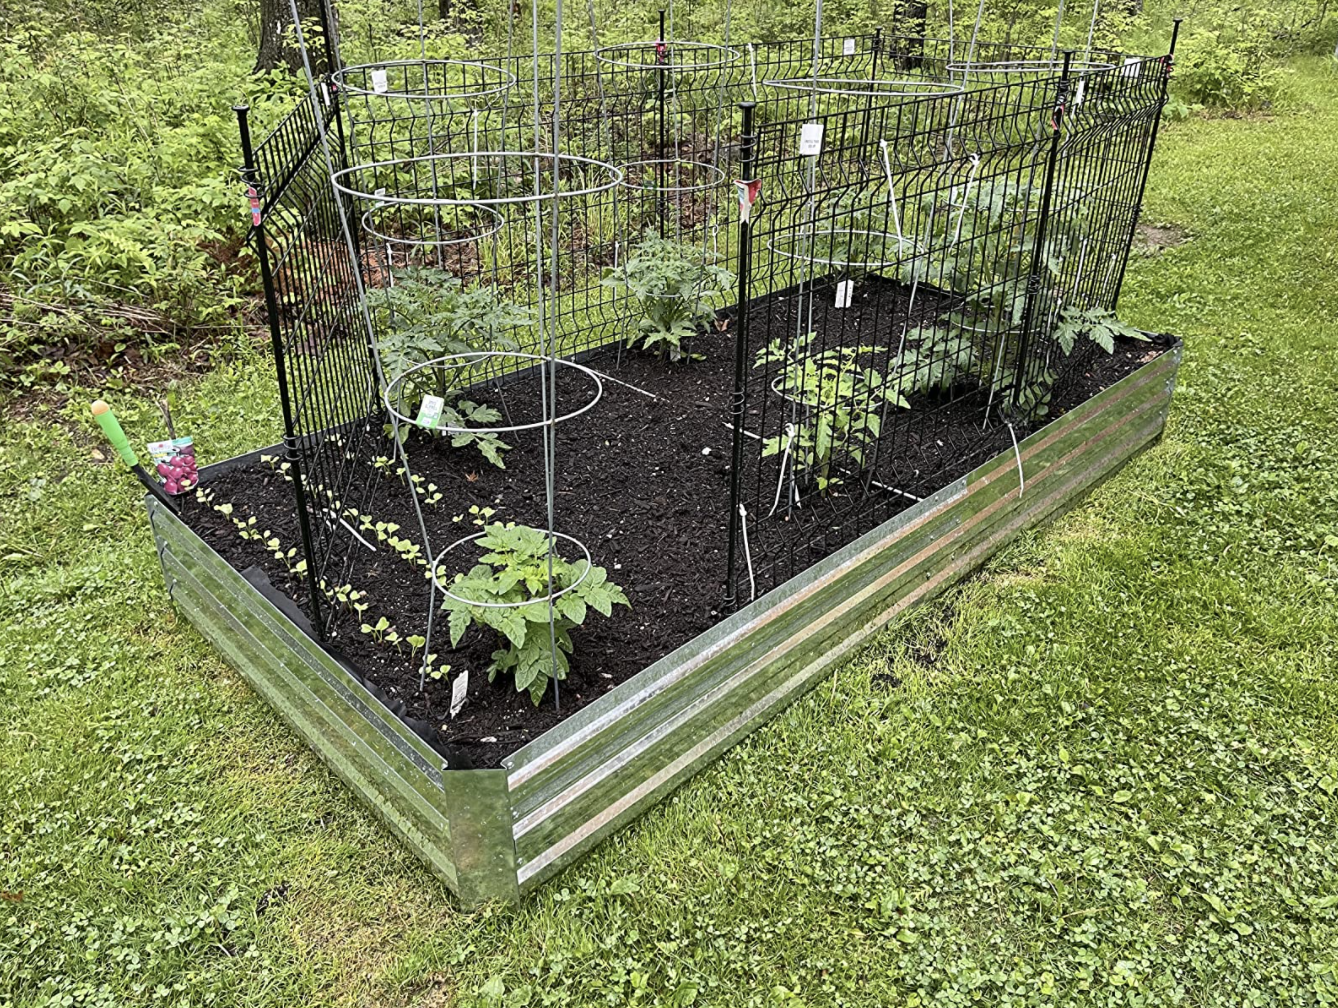 Reviewer's garden bed grows many vegetables